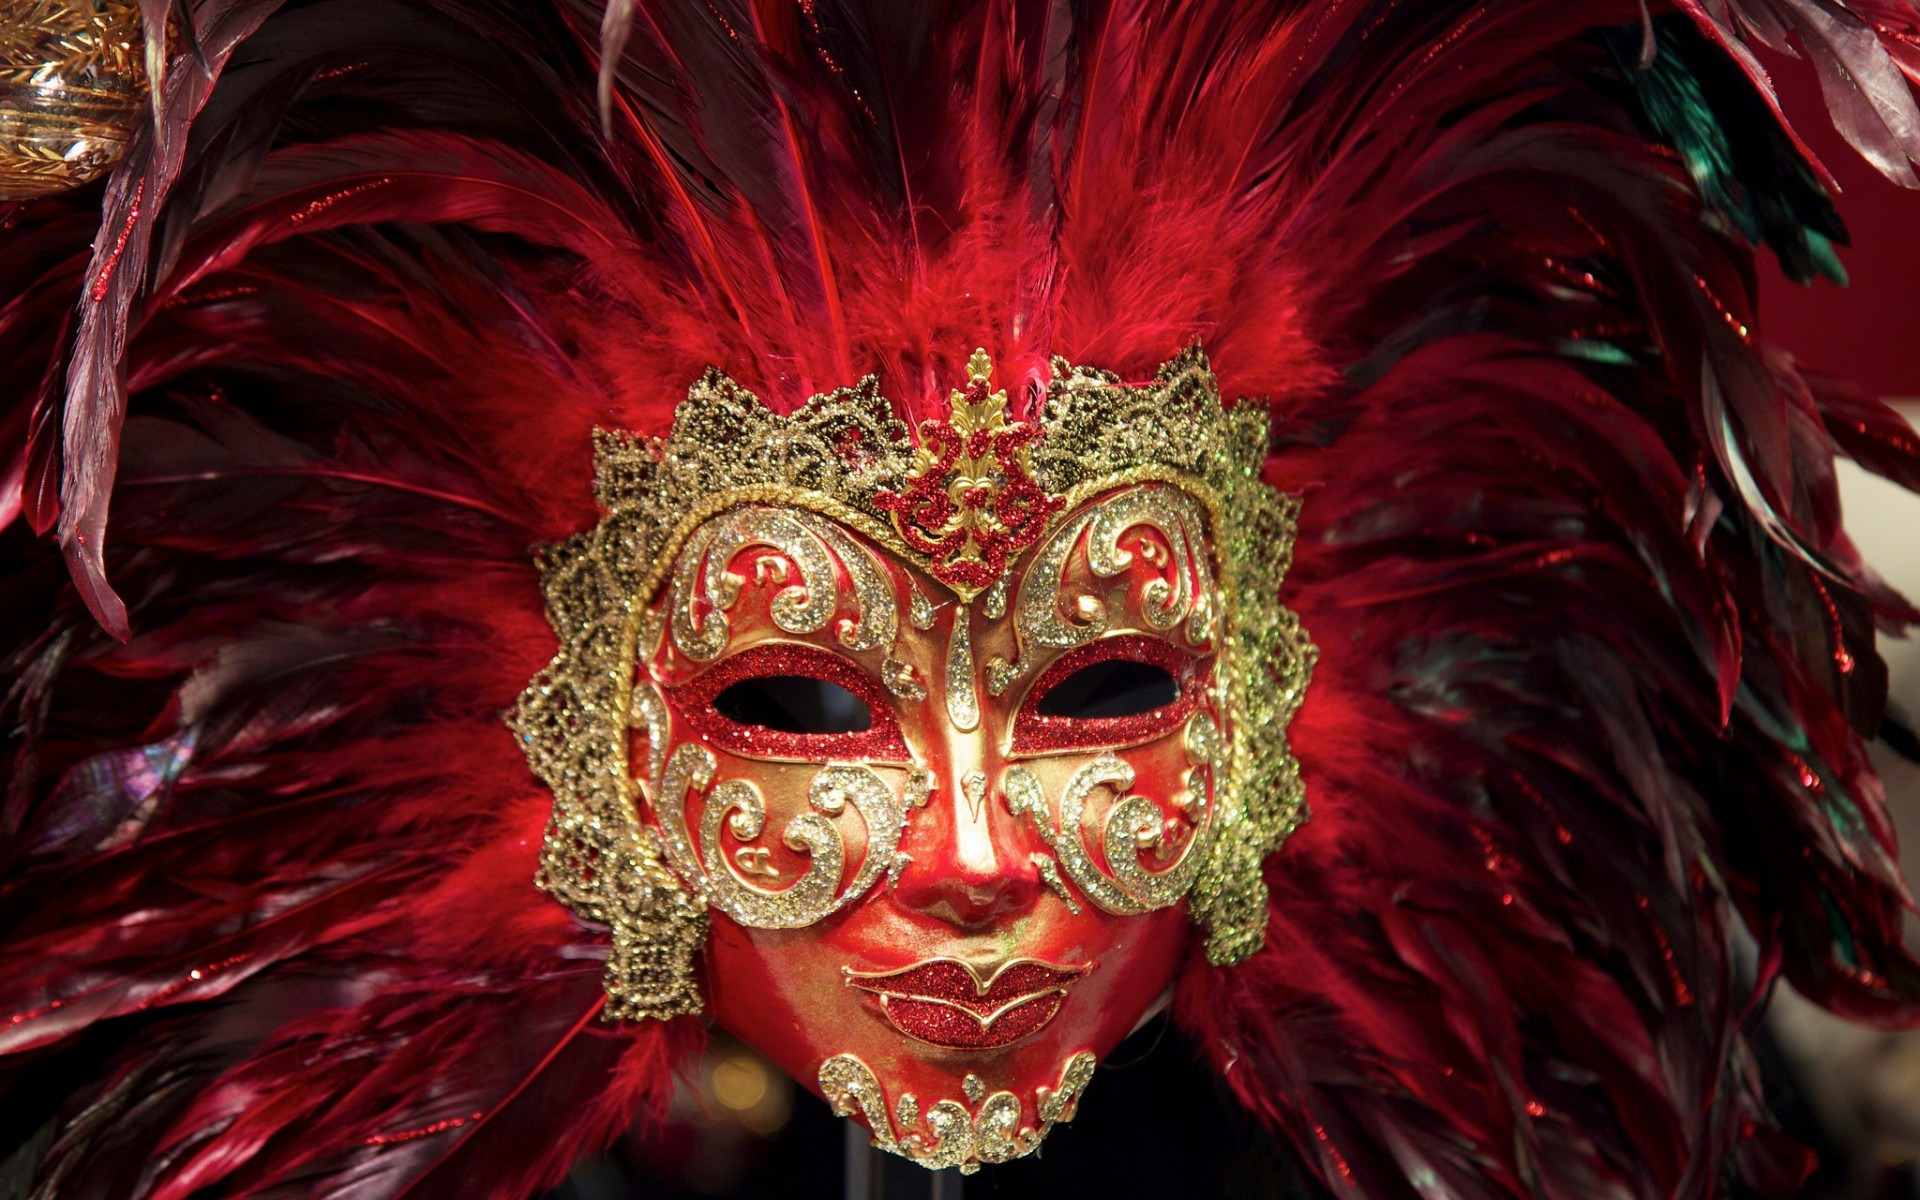 Download high quality 1920 x 1200 Feather Carnival Mask Wallpaper.